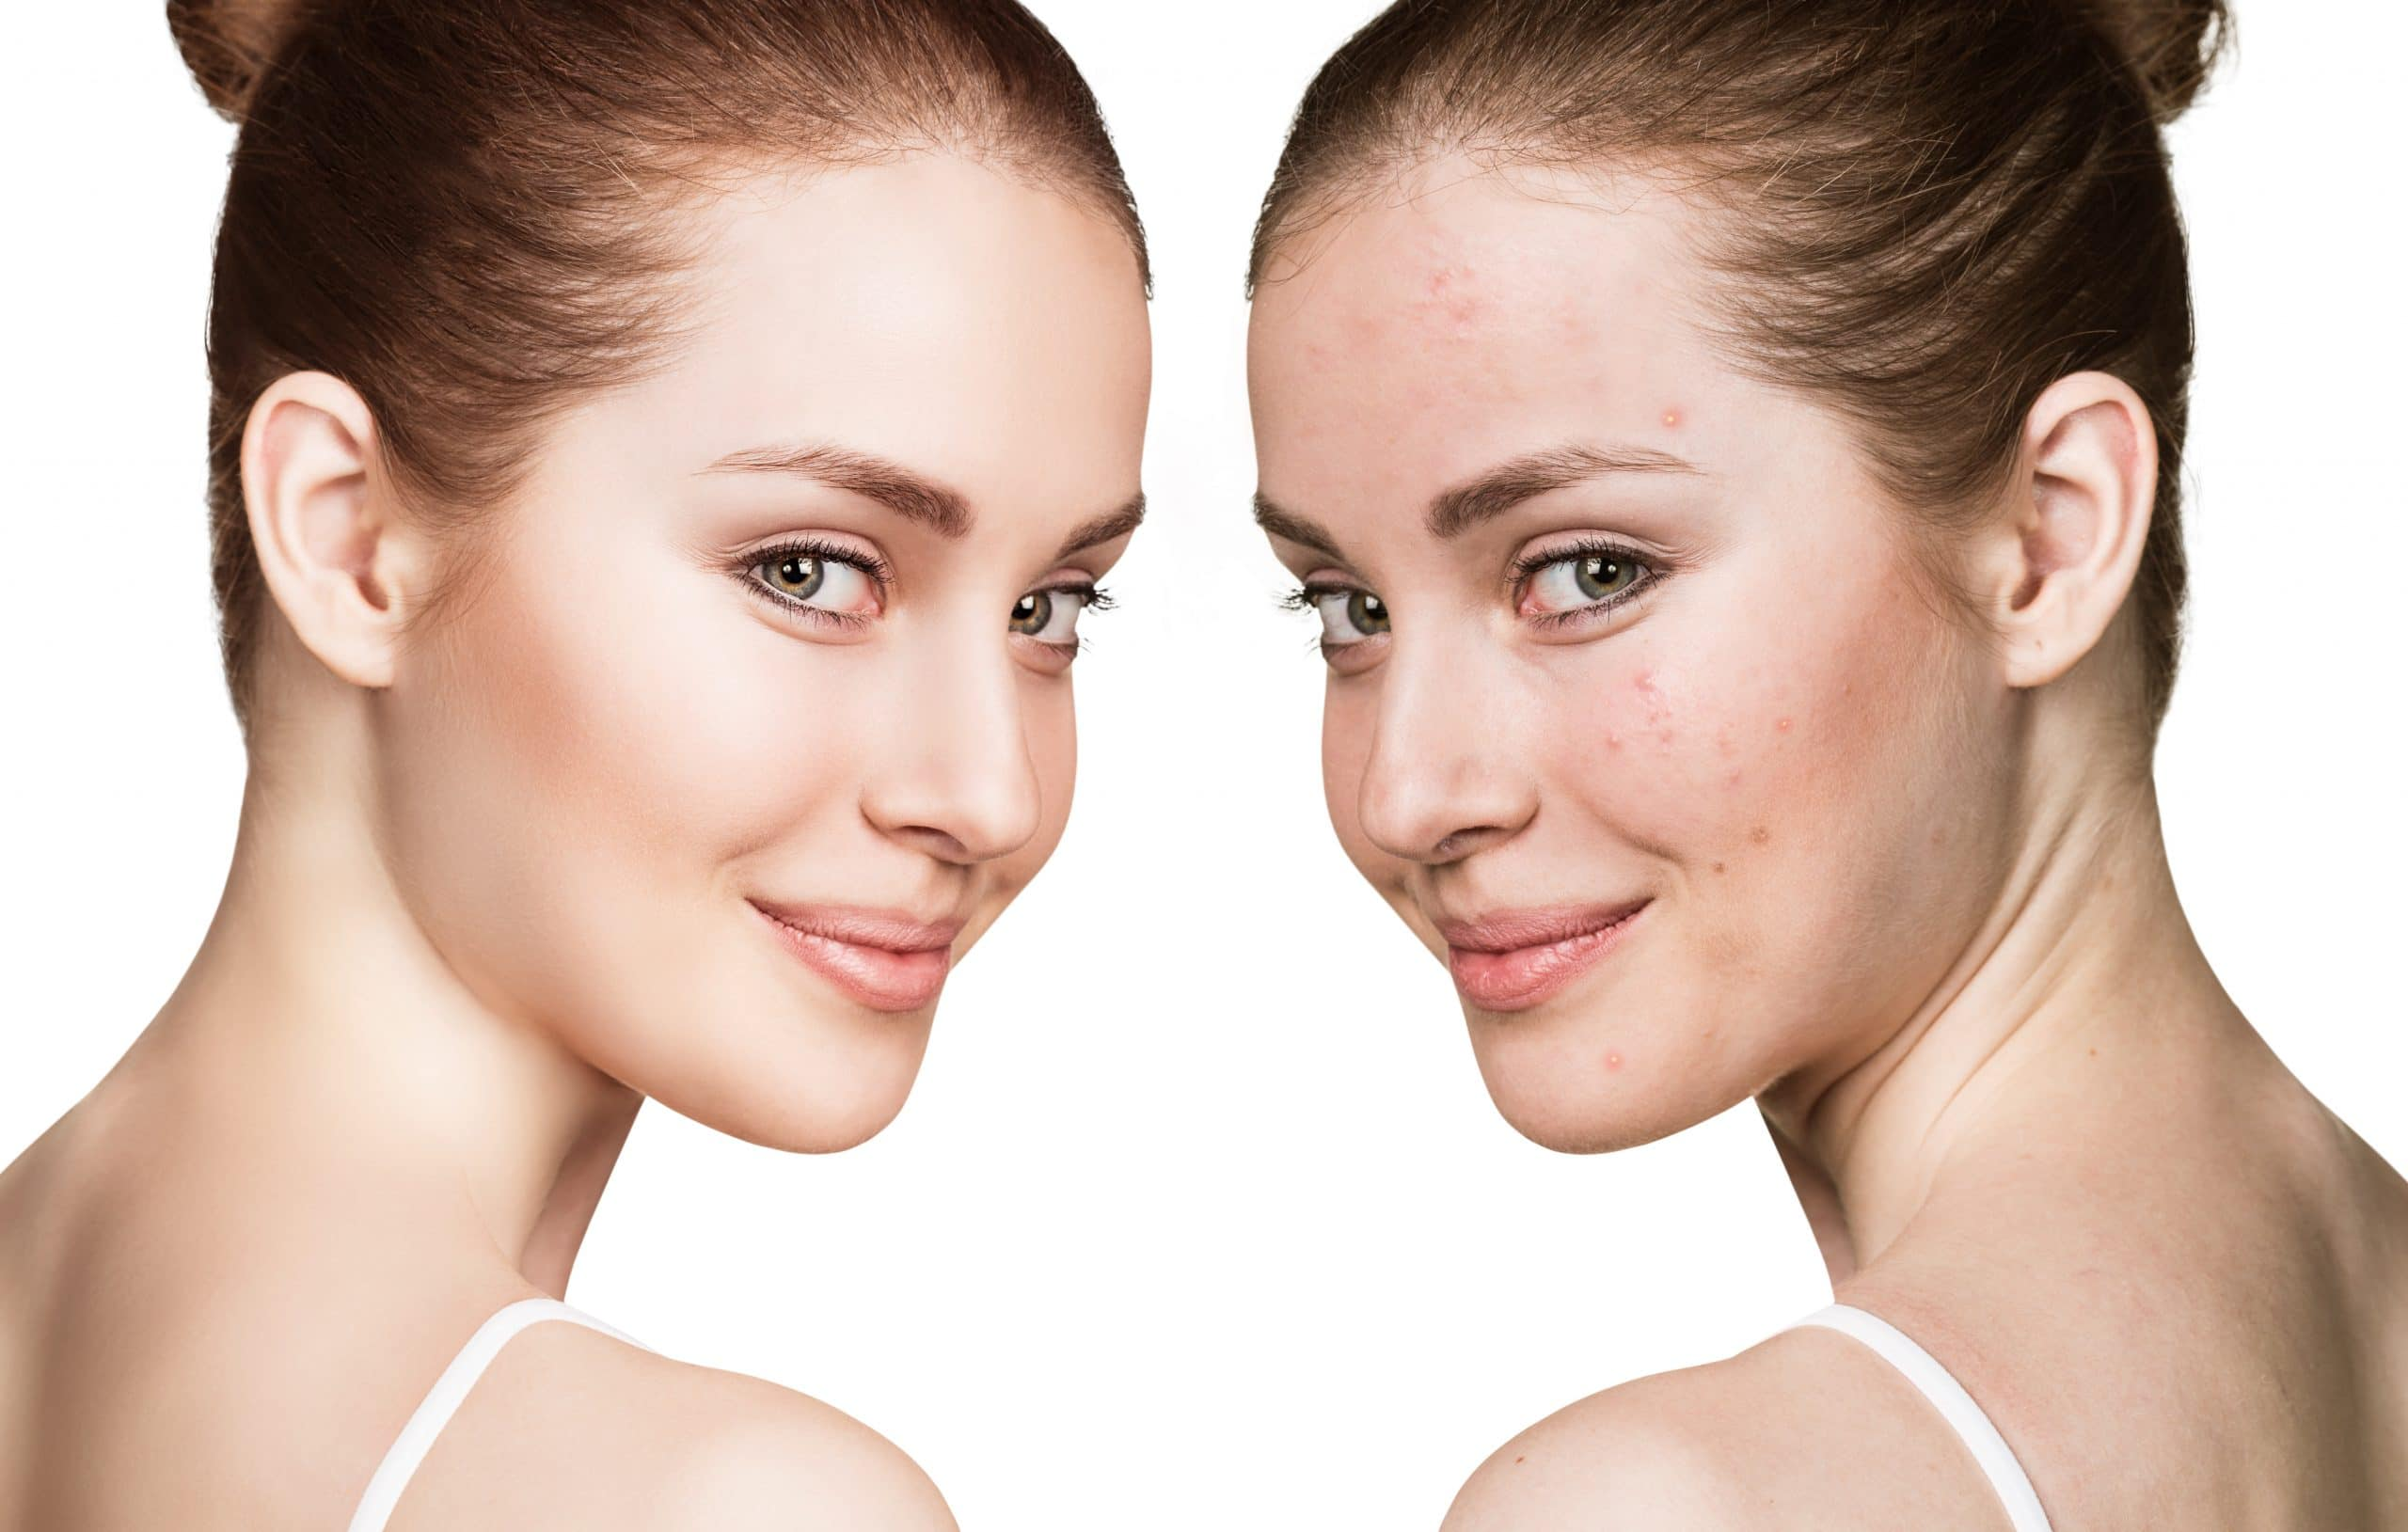 Do Acne Treatments Are Safe and Effective